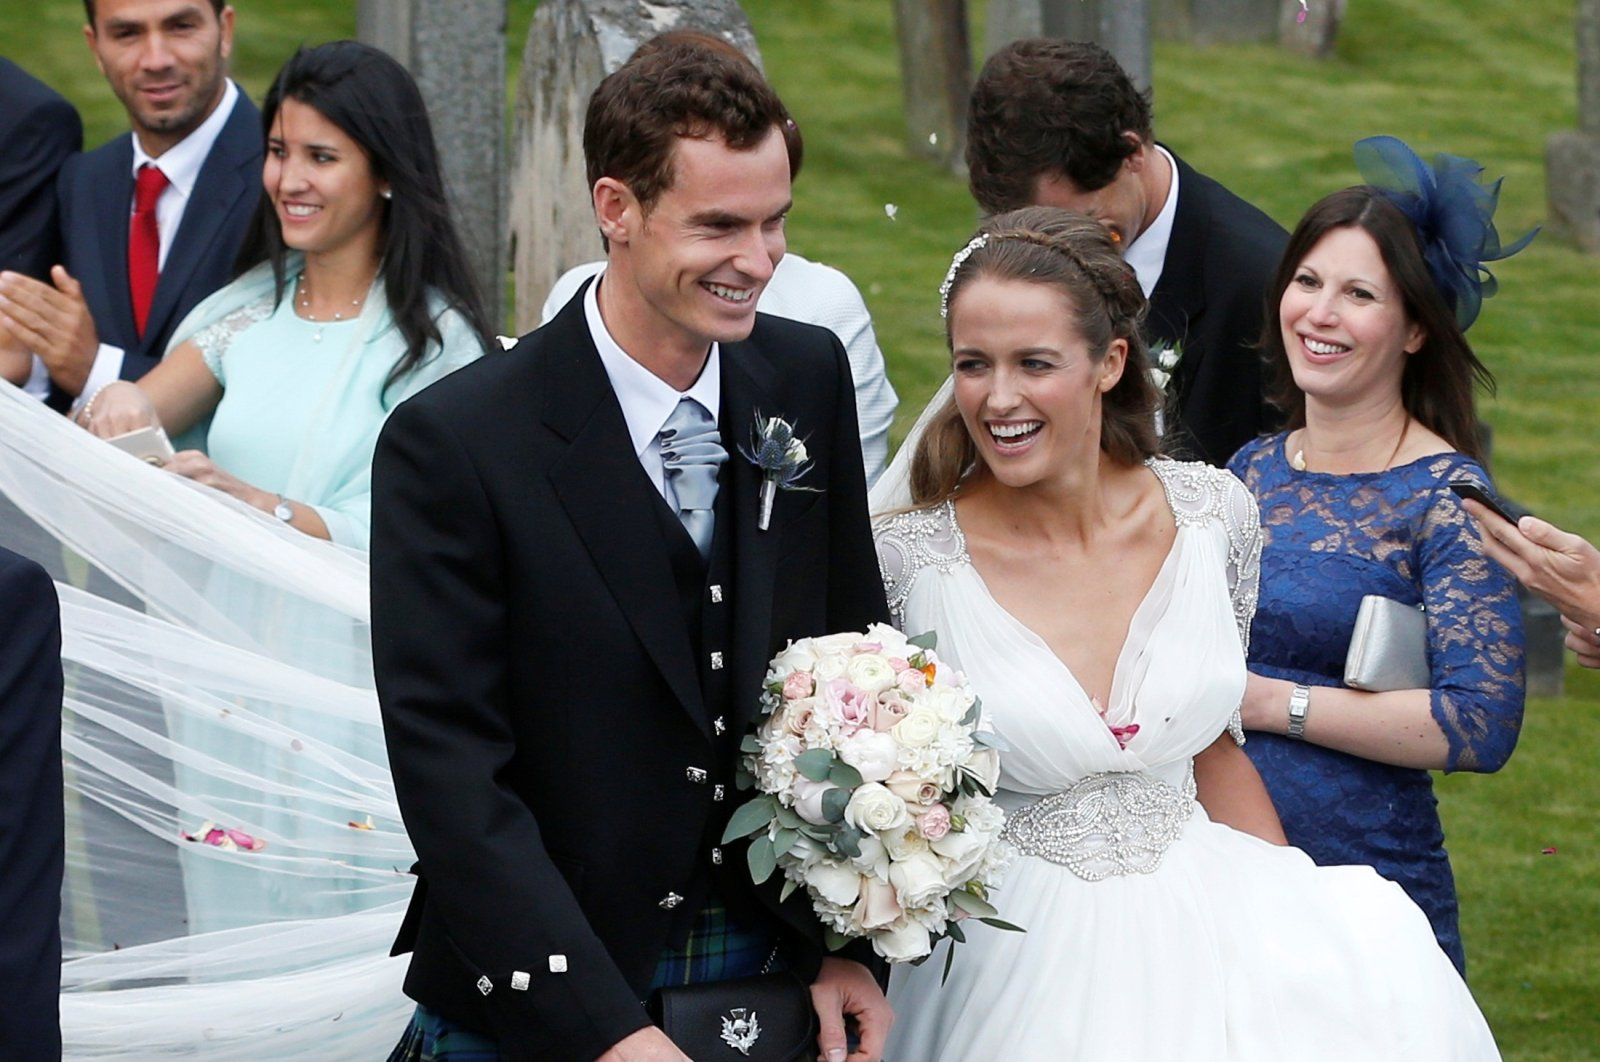 Tennis player Andy Murray leaves the cathedral after his wedding to his fiancee Kim Sears in Dunblane, Scotland, U.K., April 11, 2015. (Reuters Photo)